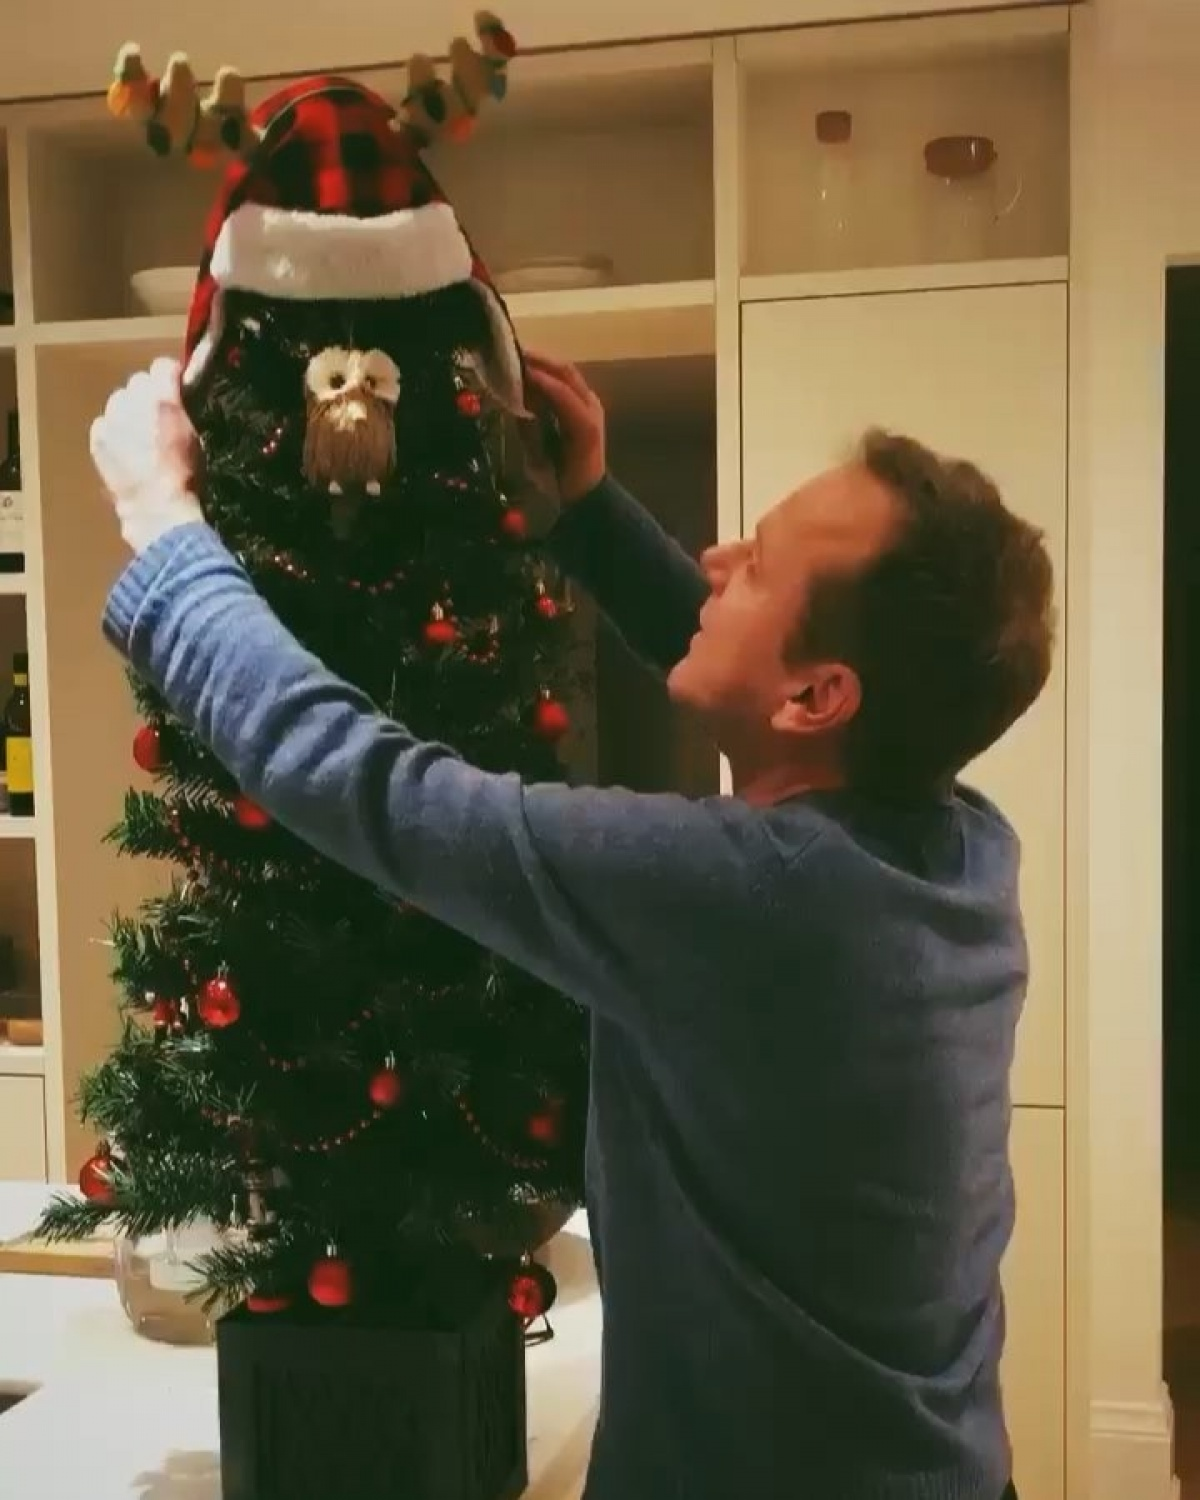 Kiefer Sutherland hugs a Christmas tree in holiday greeting ...